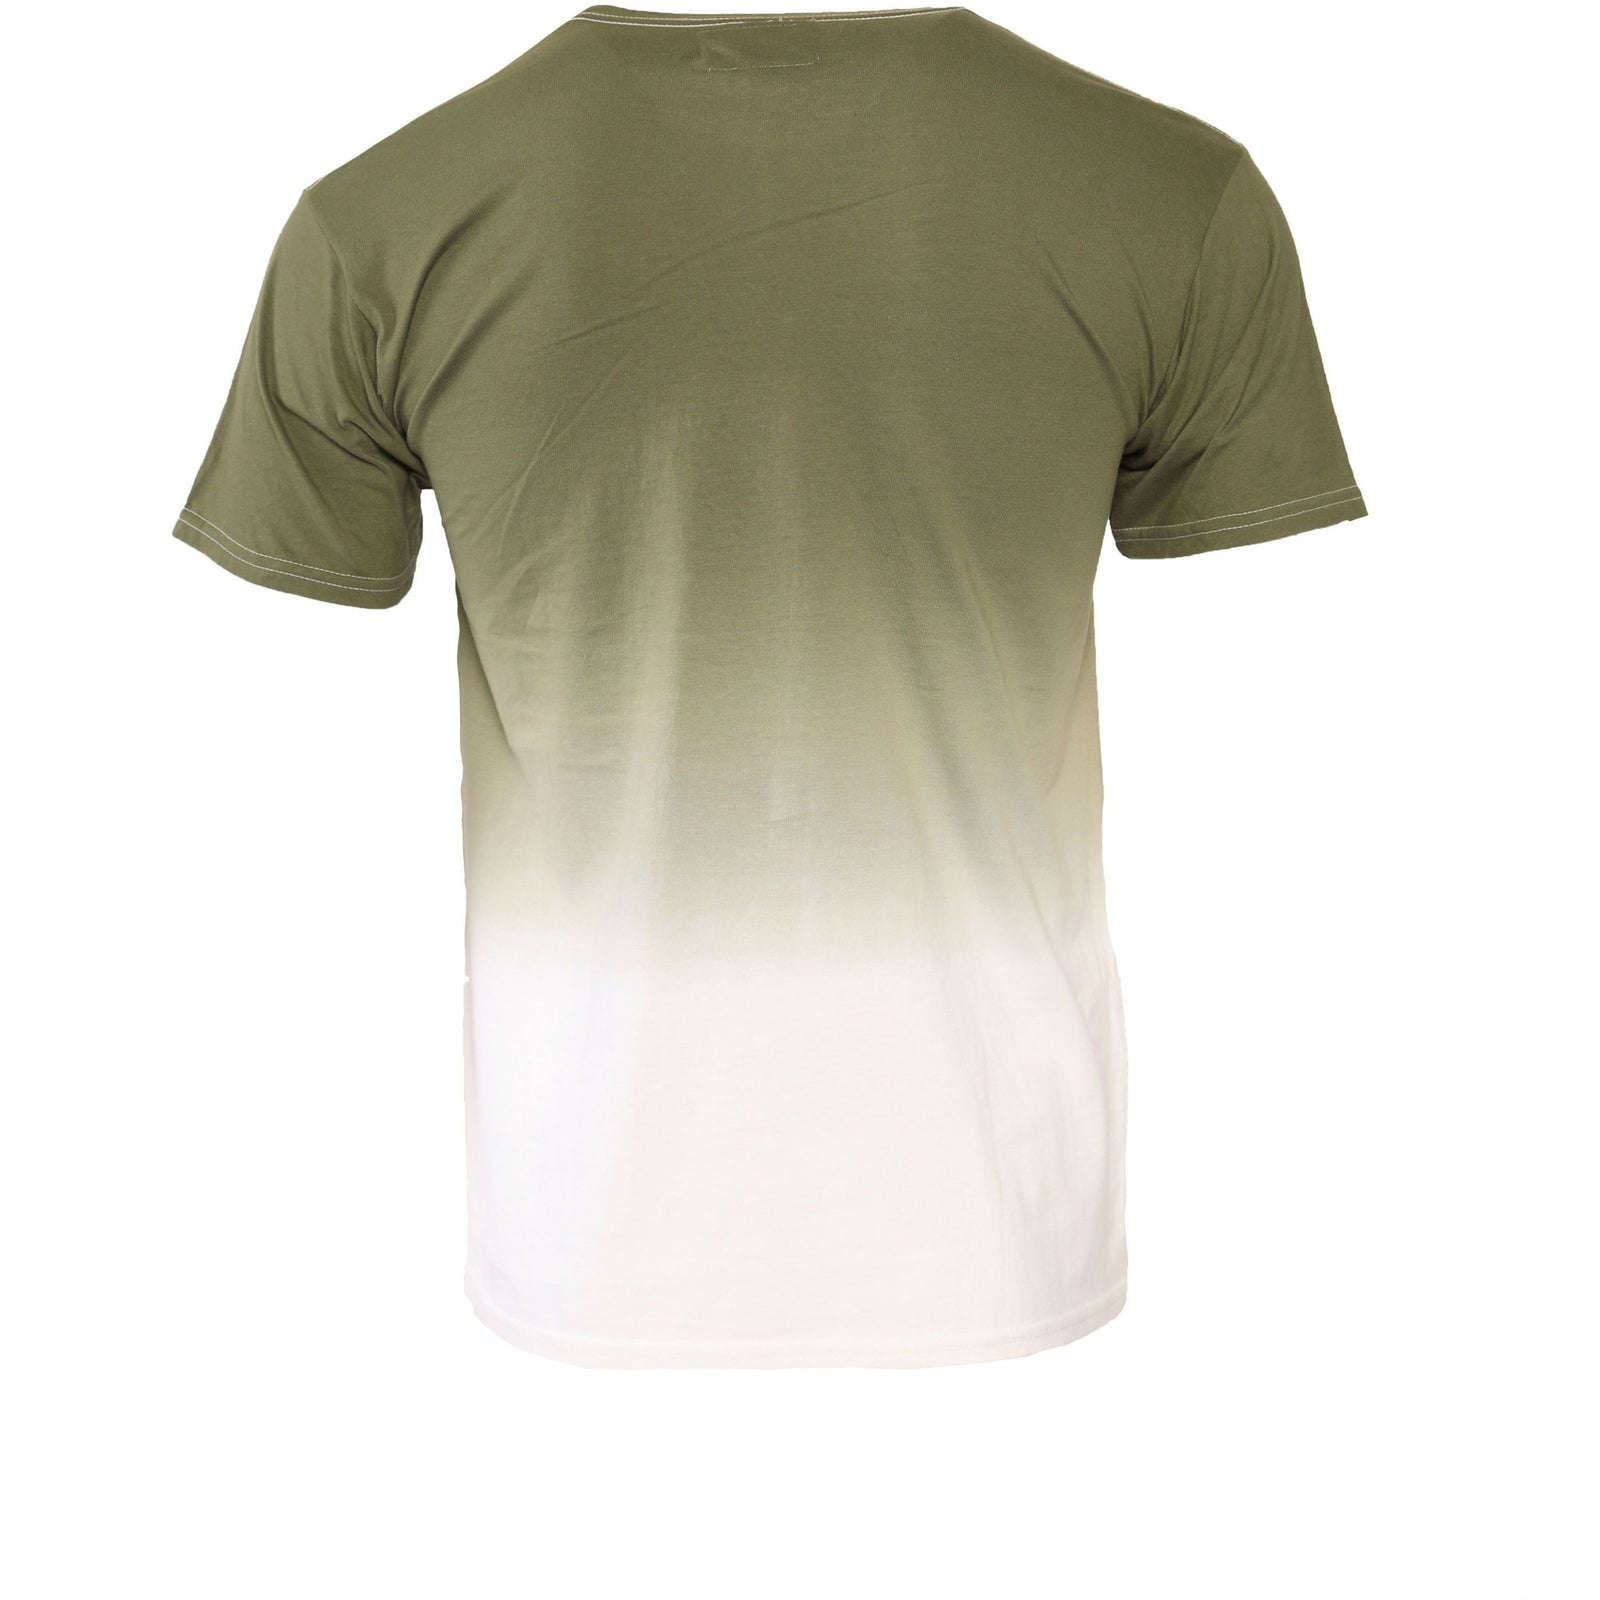 "Ailip Apparel's Olive Dip Dye Shirt - (Previous Collection) - AILIP ""Anything In Life Is Possible"""